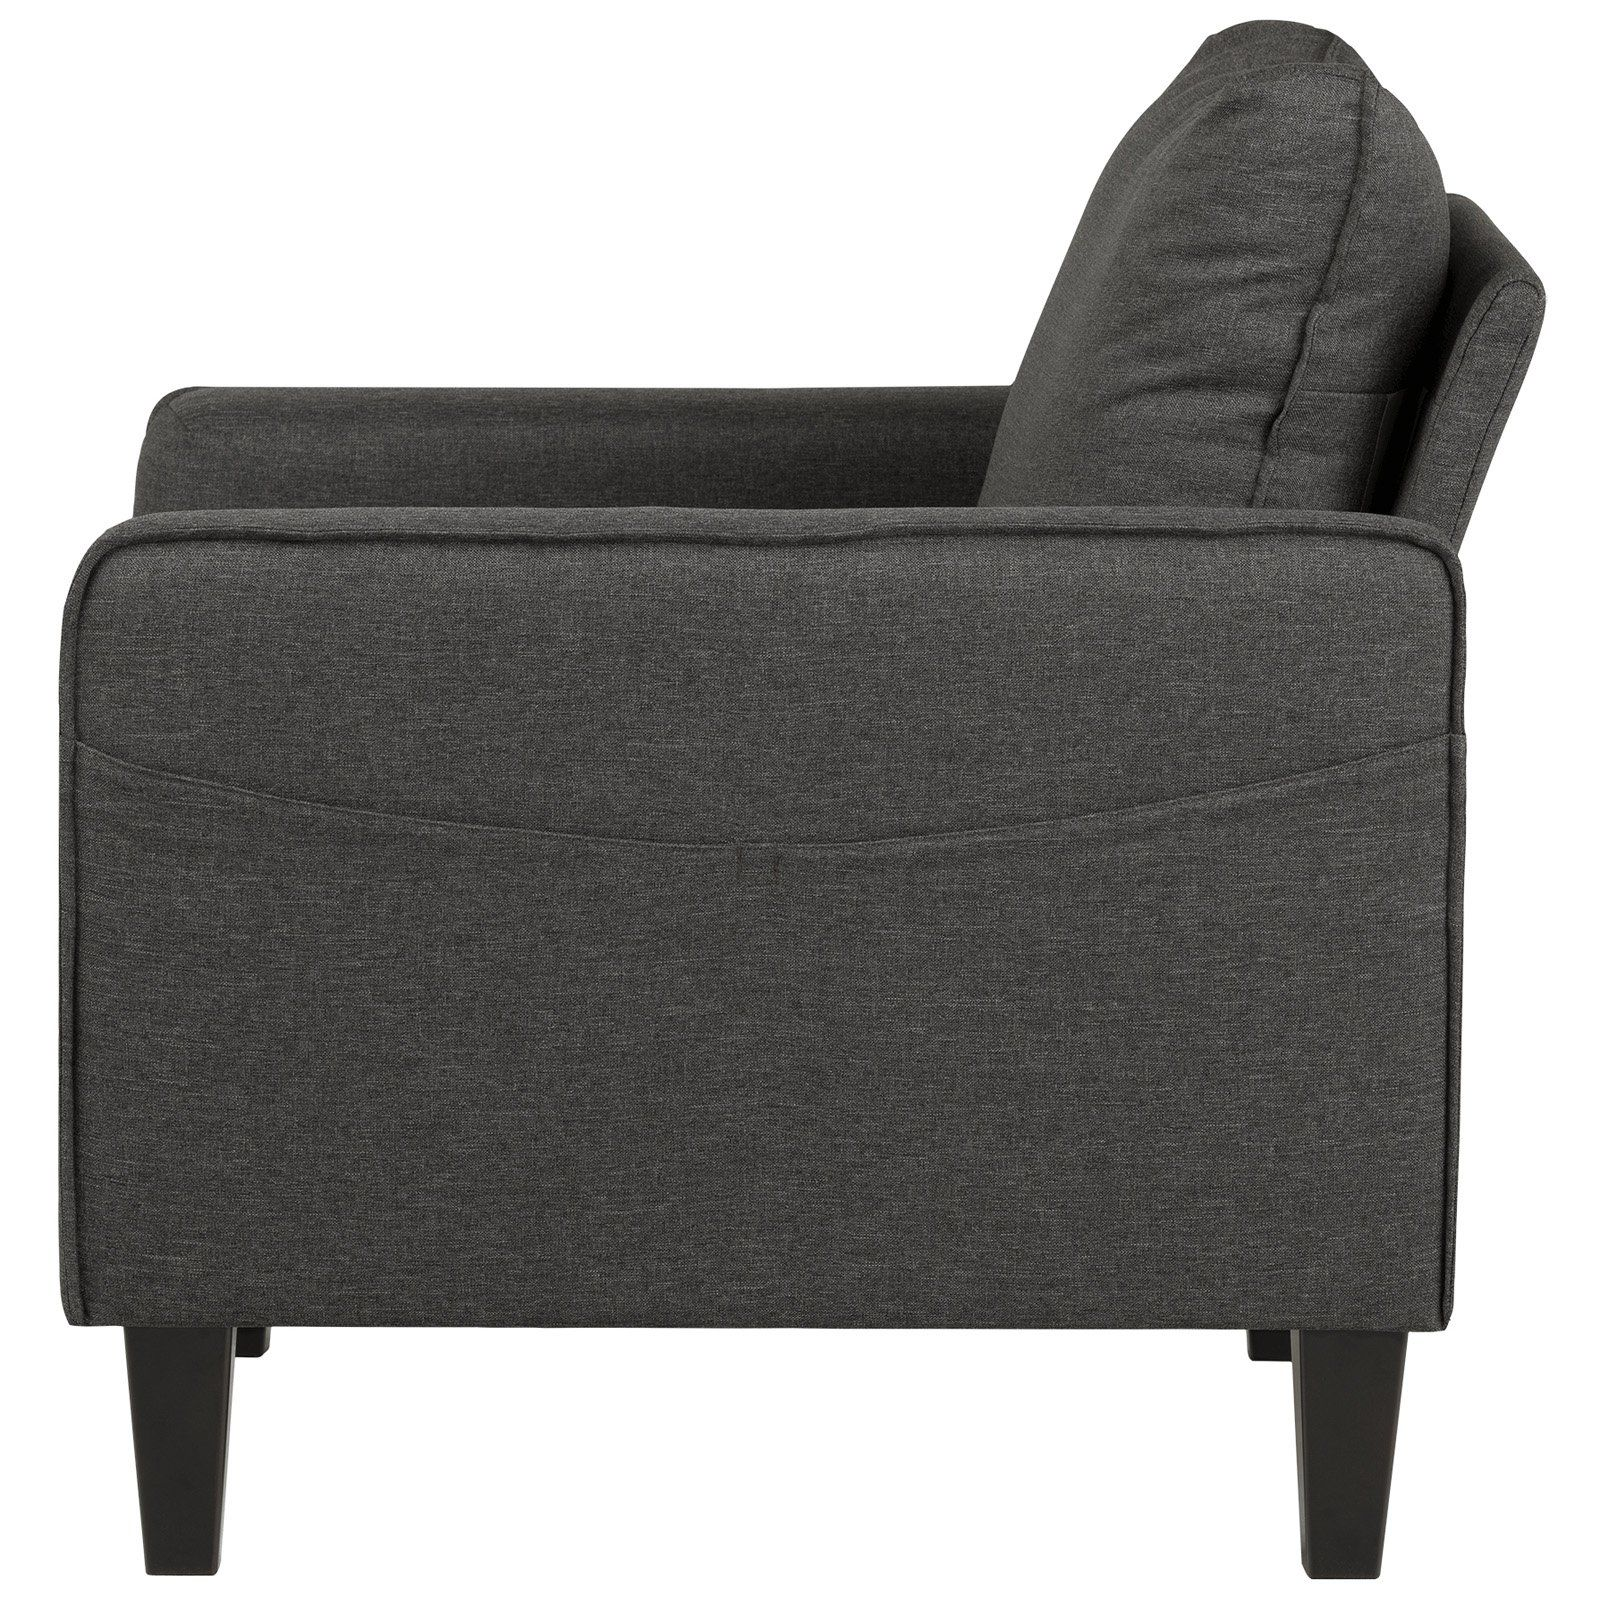 Adrian Charcoal Gray Accent Chair: Live-It Cozy Accent Chair By South Shore Charcoal Gray